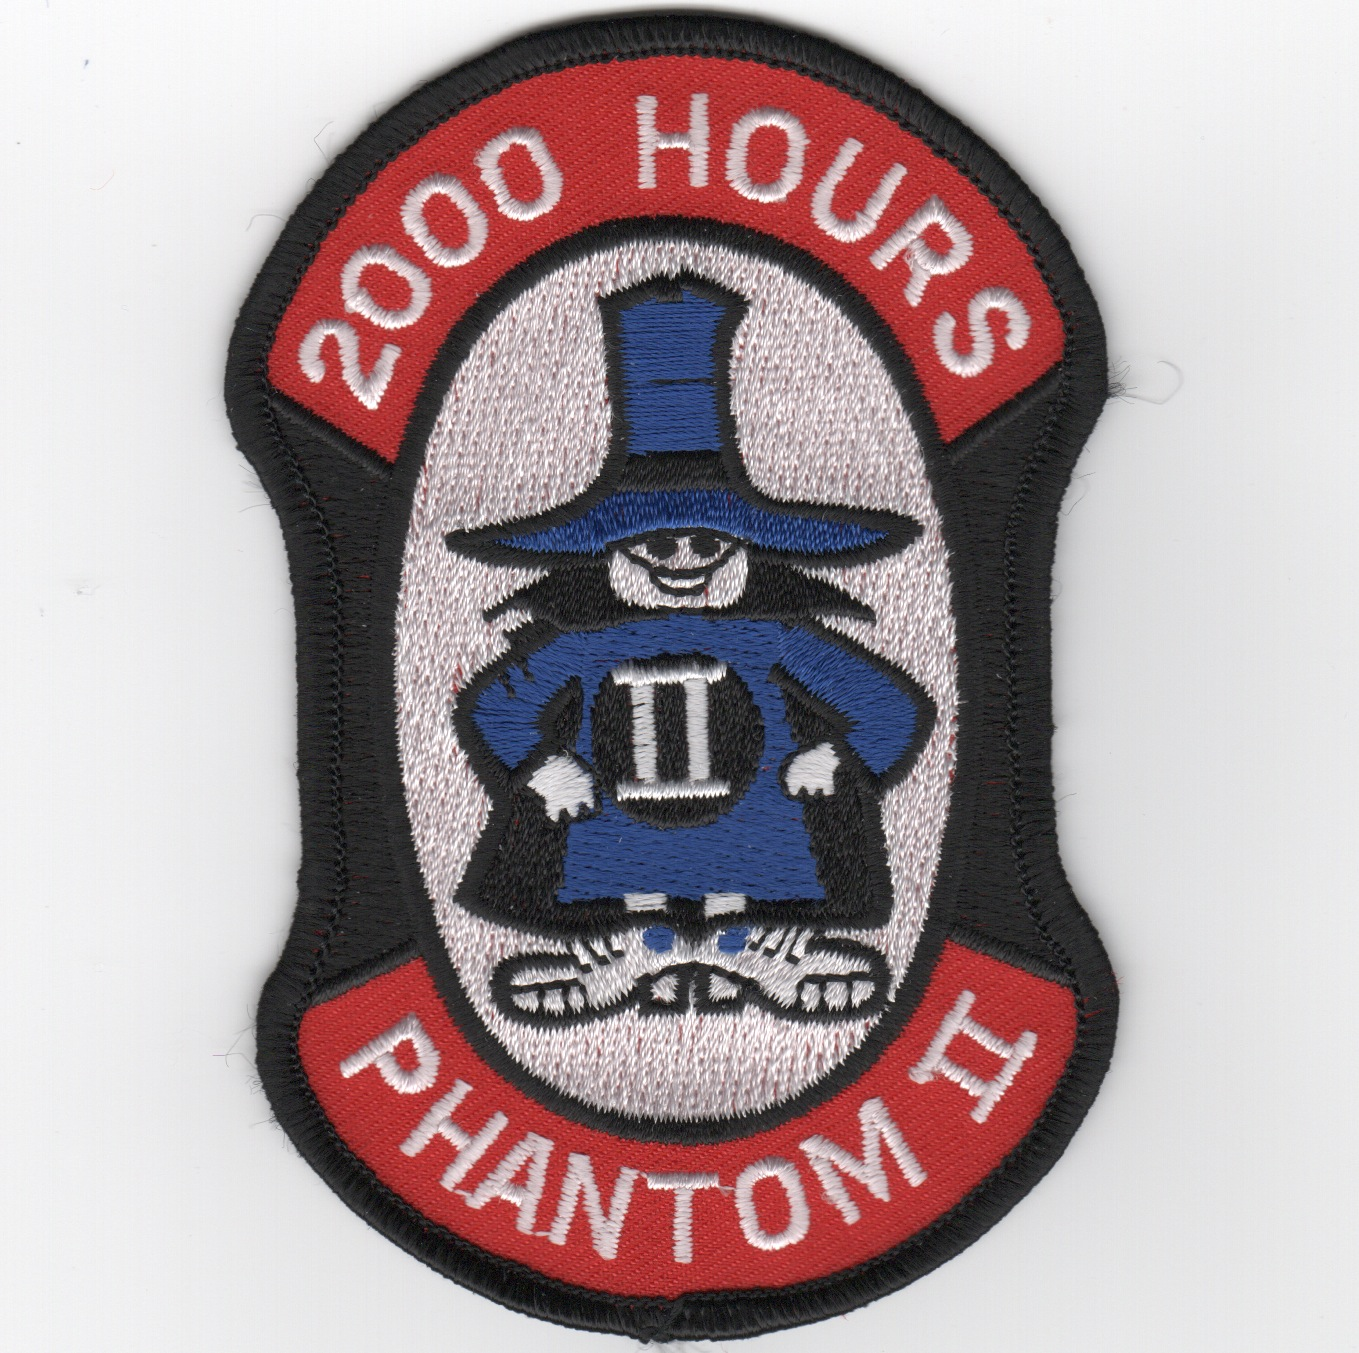 F-4 '2000 Hours' Patch